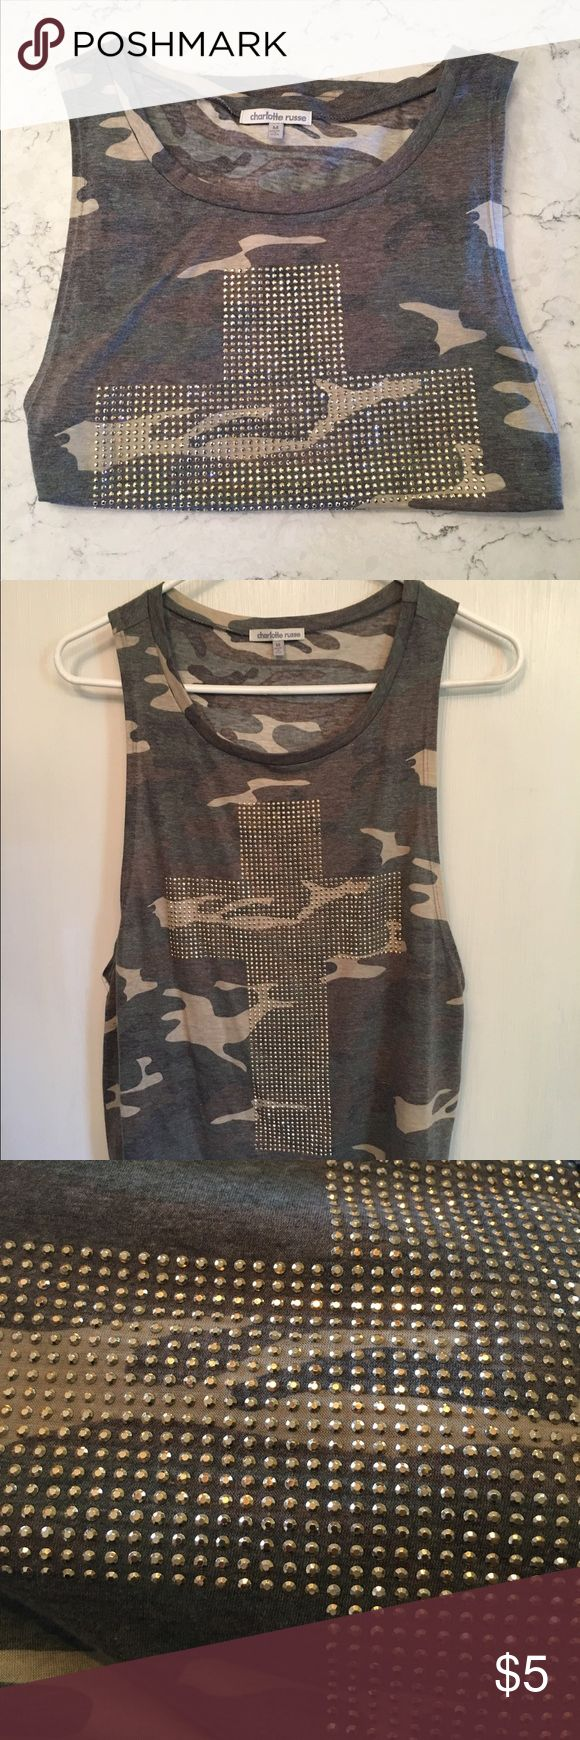 Charlotte Russe tank top Camouflage tank top with gems in the shape of a cross. Worn once, very good condition. Charlotte Russe Tops Tank Tops